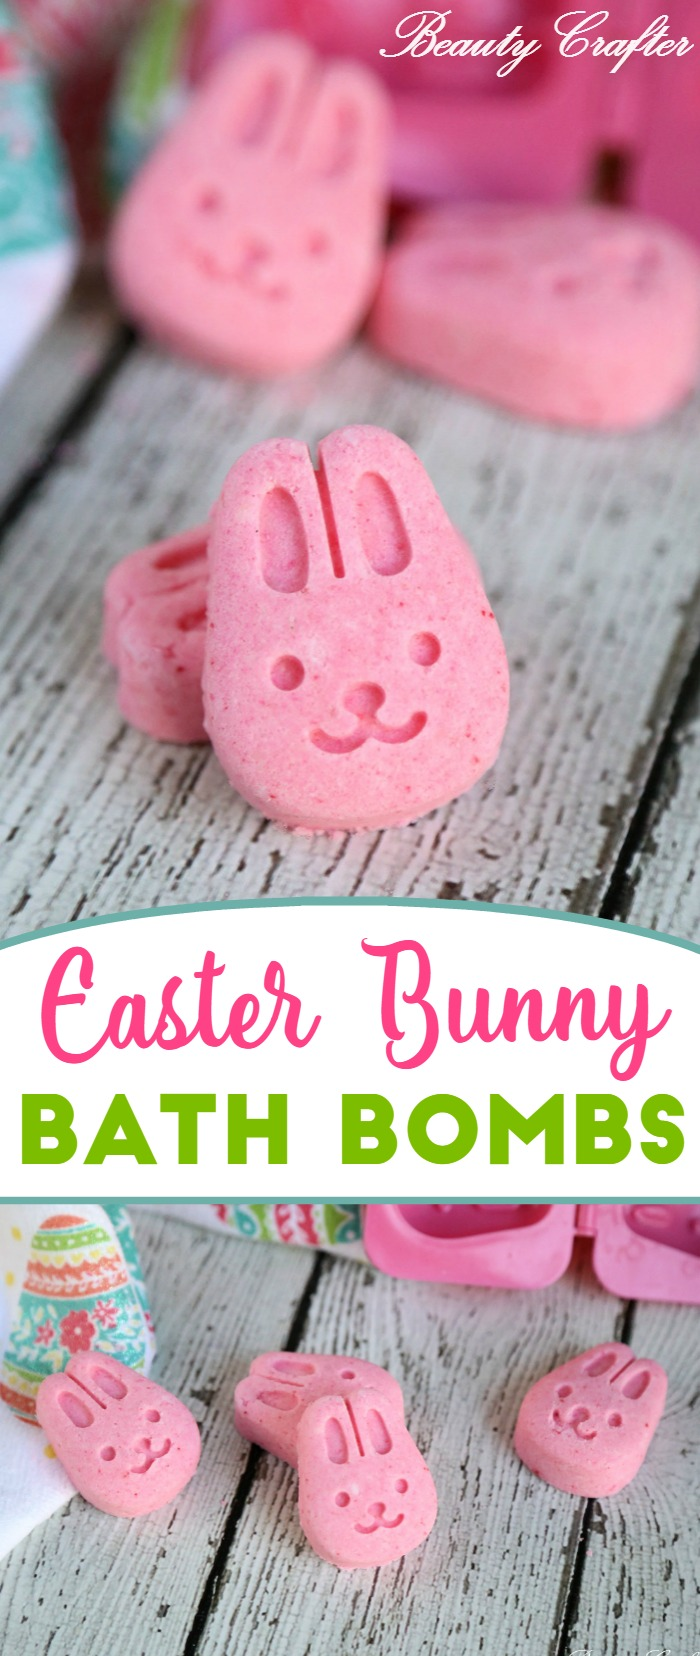 Easter Bath Bombs - Easter Bunny Craft, cute pink rabbit bath bombs #bathbombs #easter #bunnies